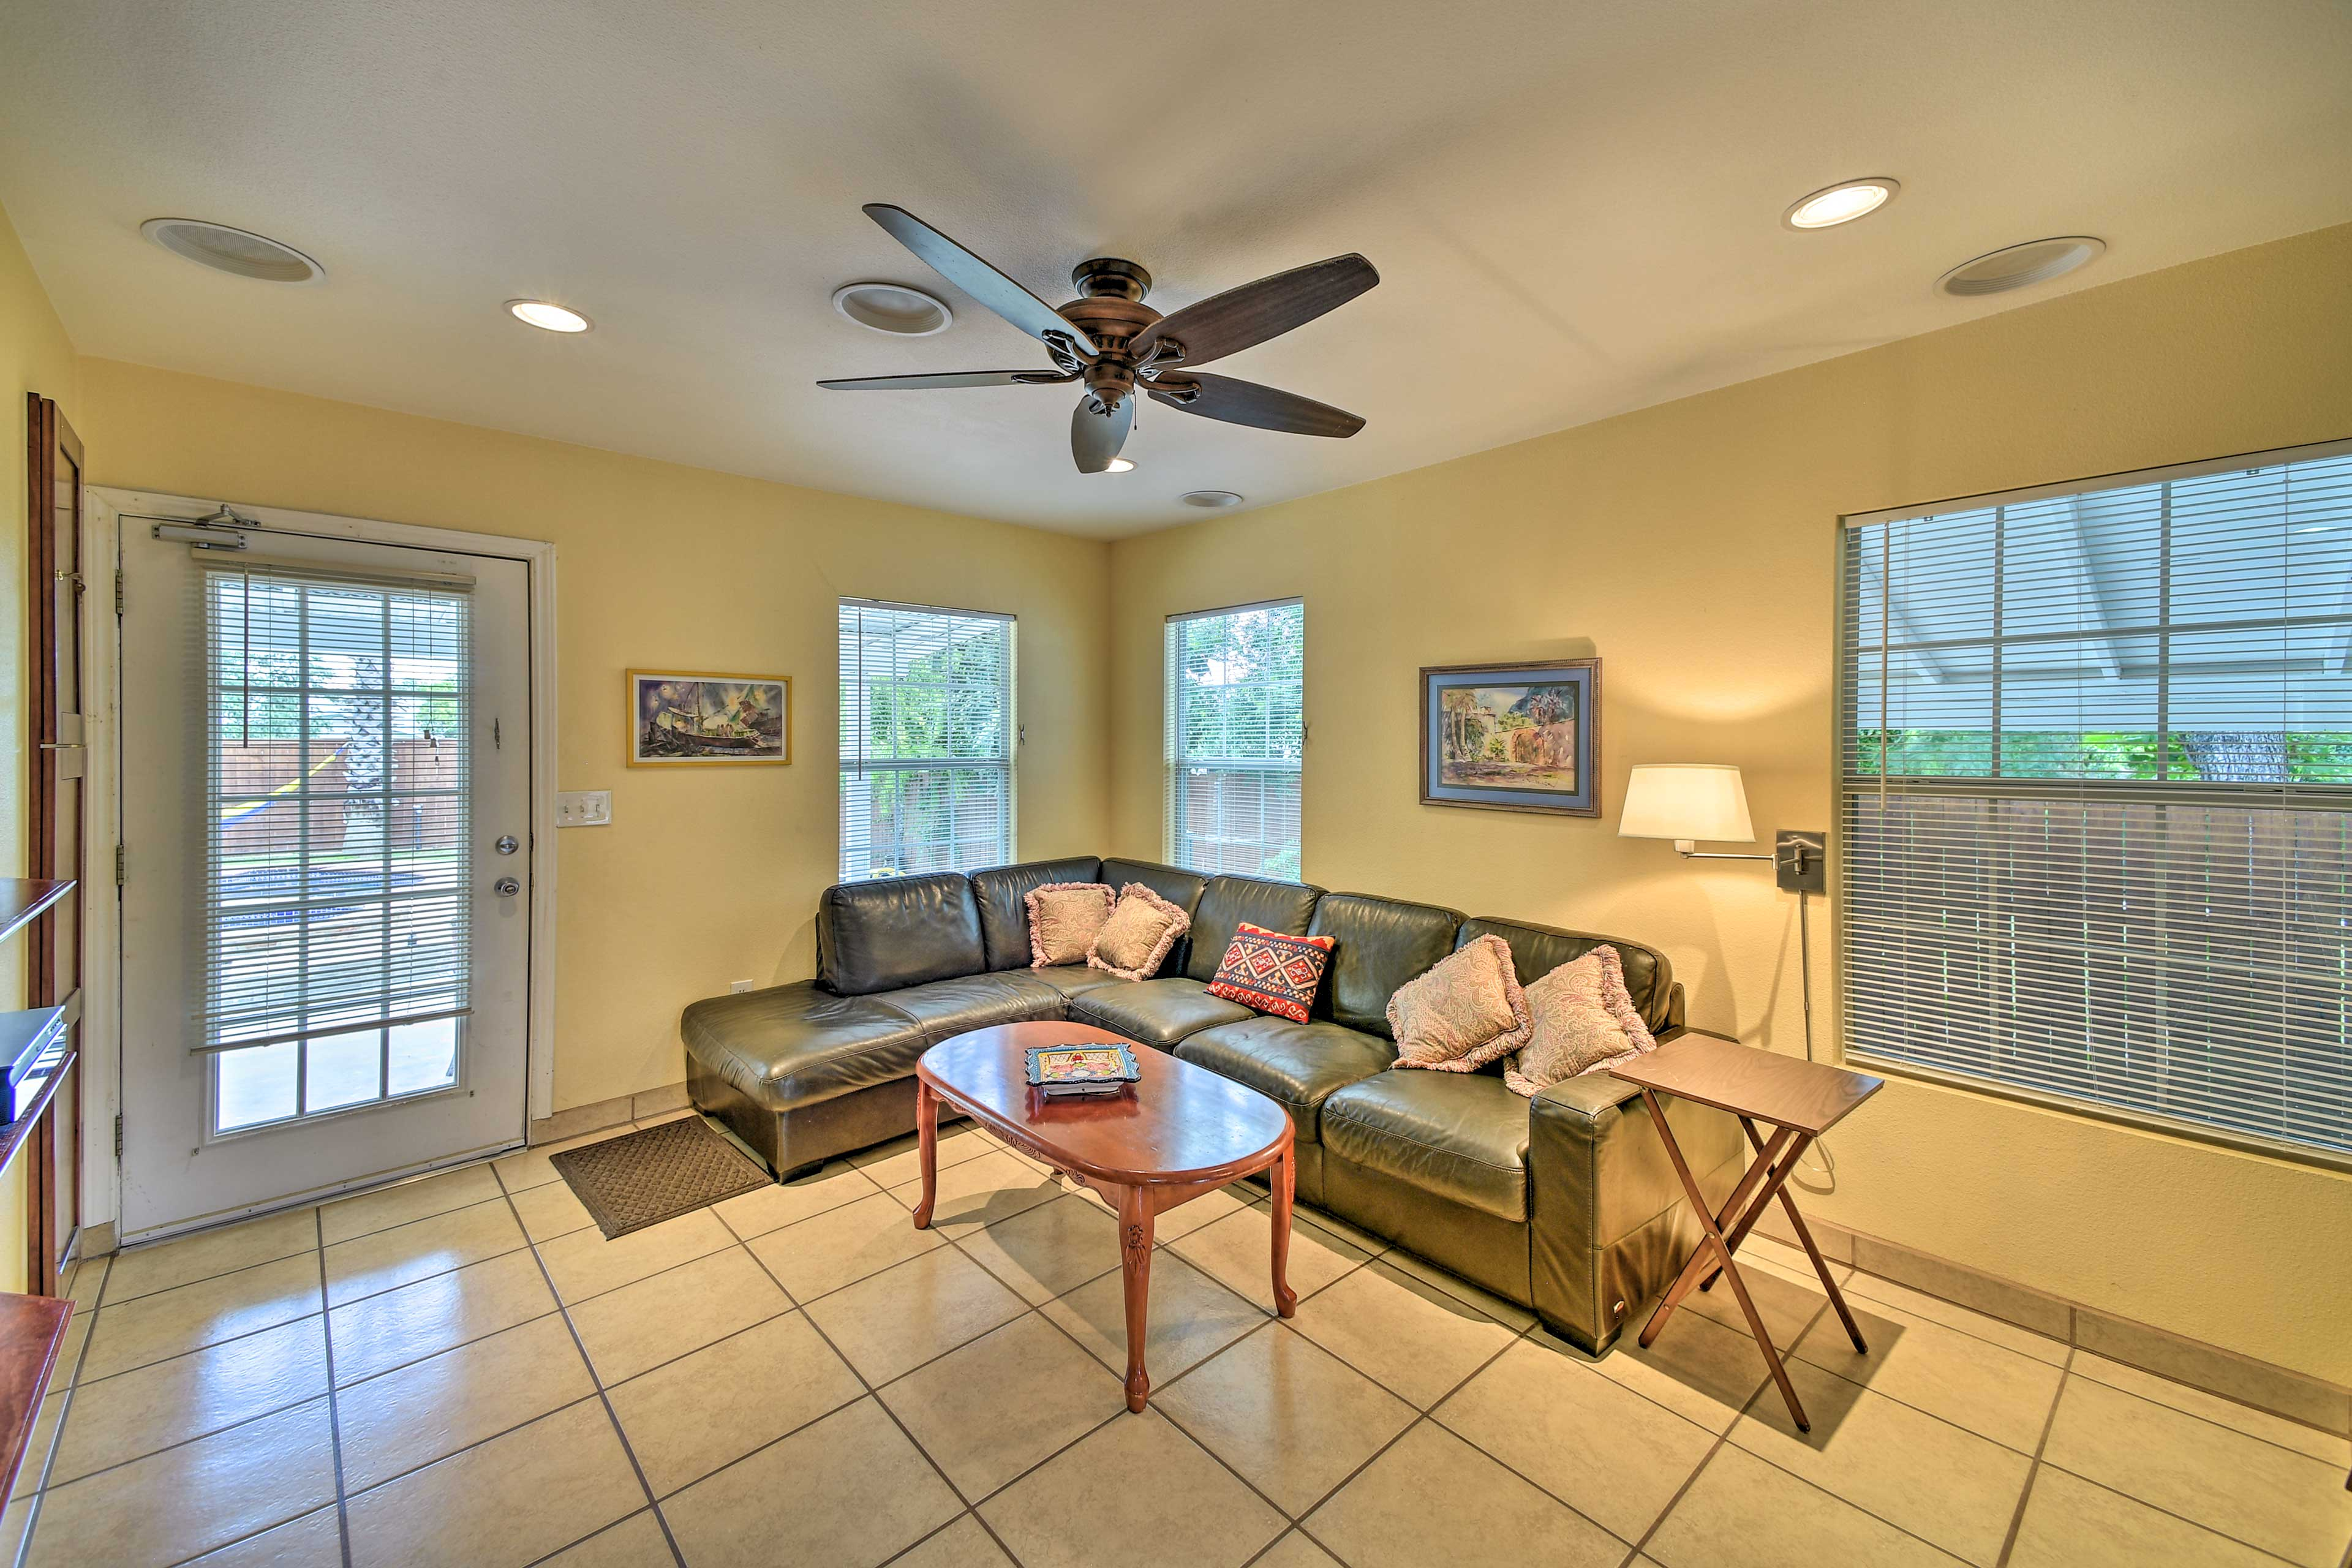 Lounge in the living space in between trips to the main attractions!